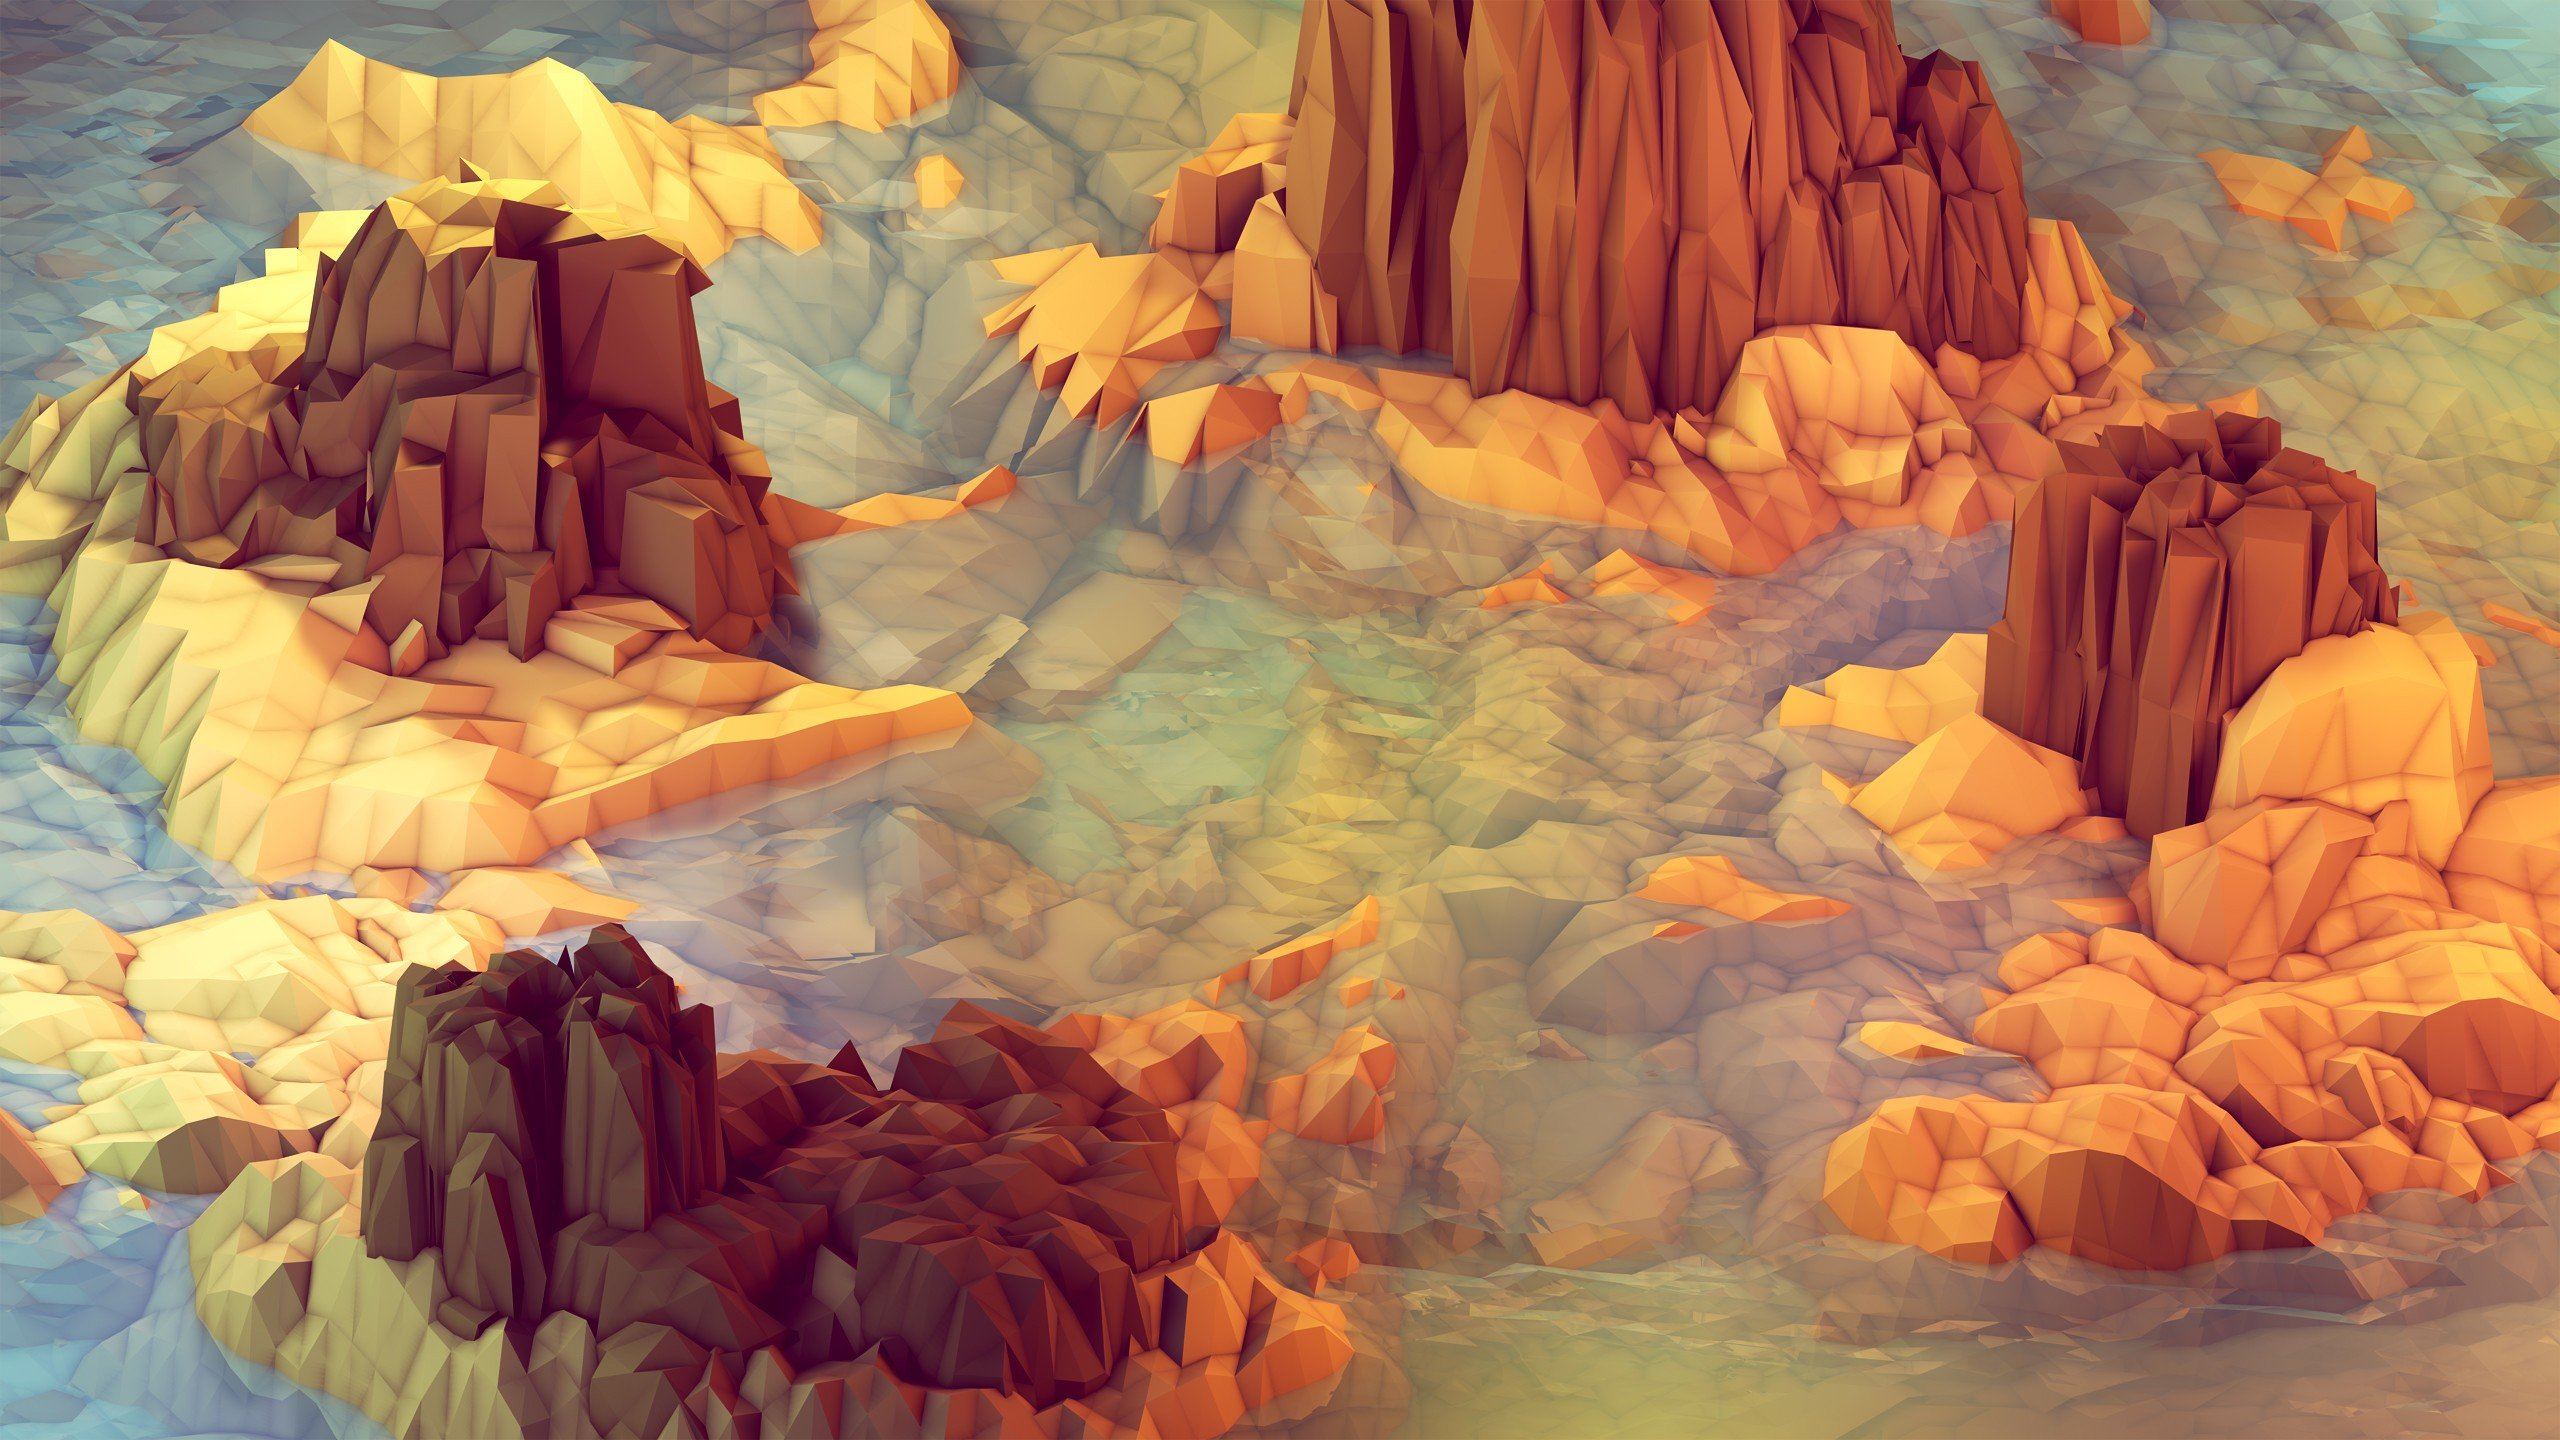 Get 20 Stellar Quad HD Low Poly Wallpapers For Android iOS and 2560x1440